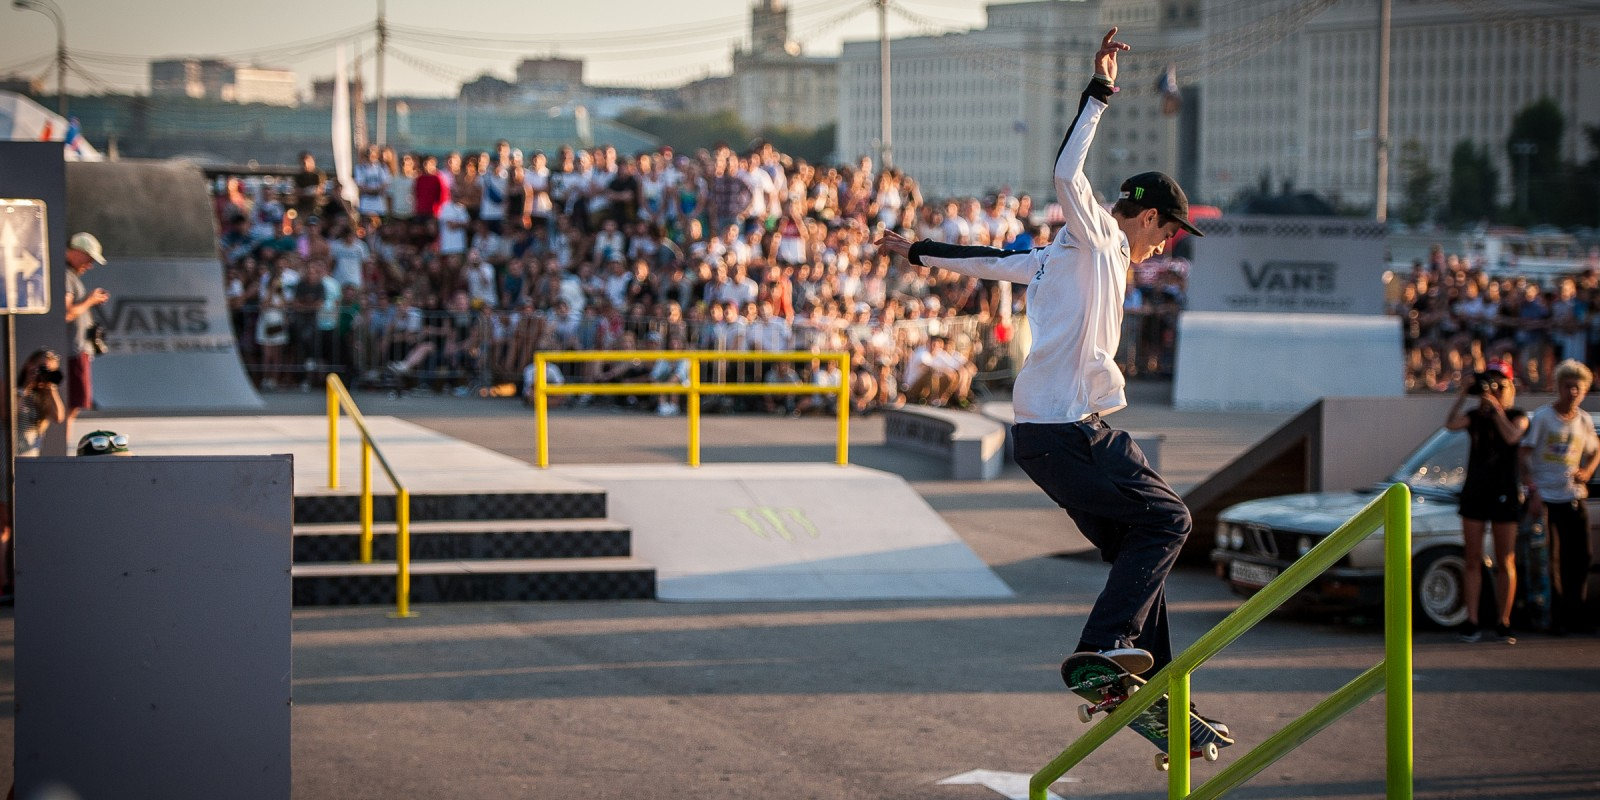 Images from House Of Vans in Moscow